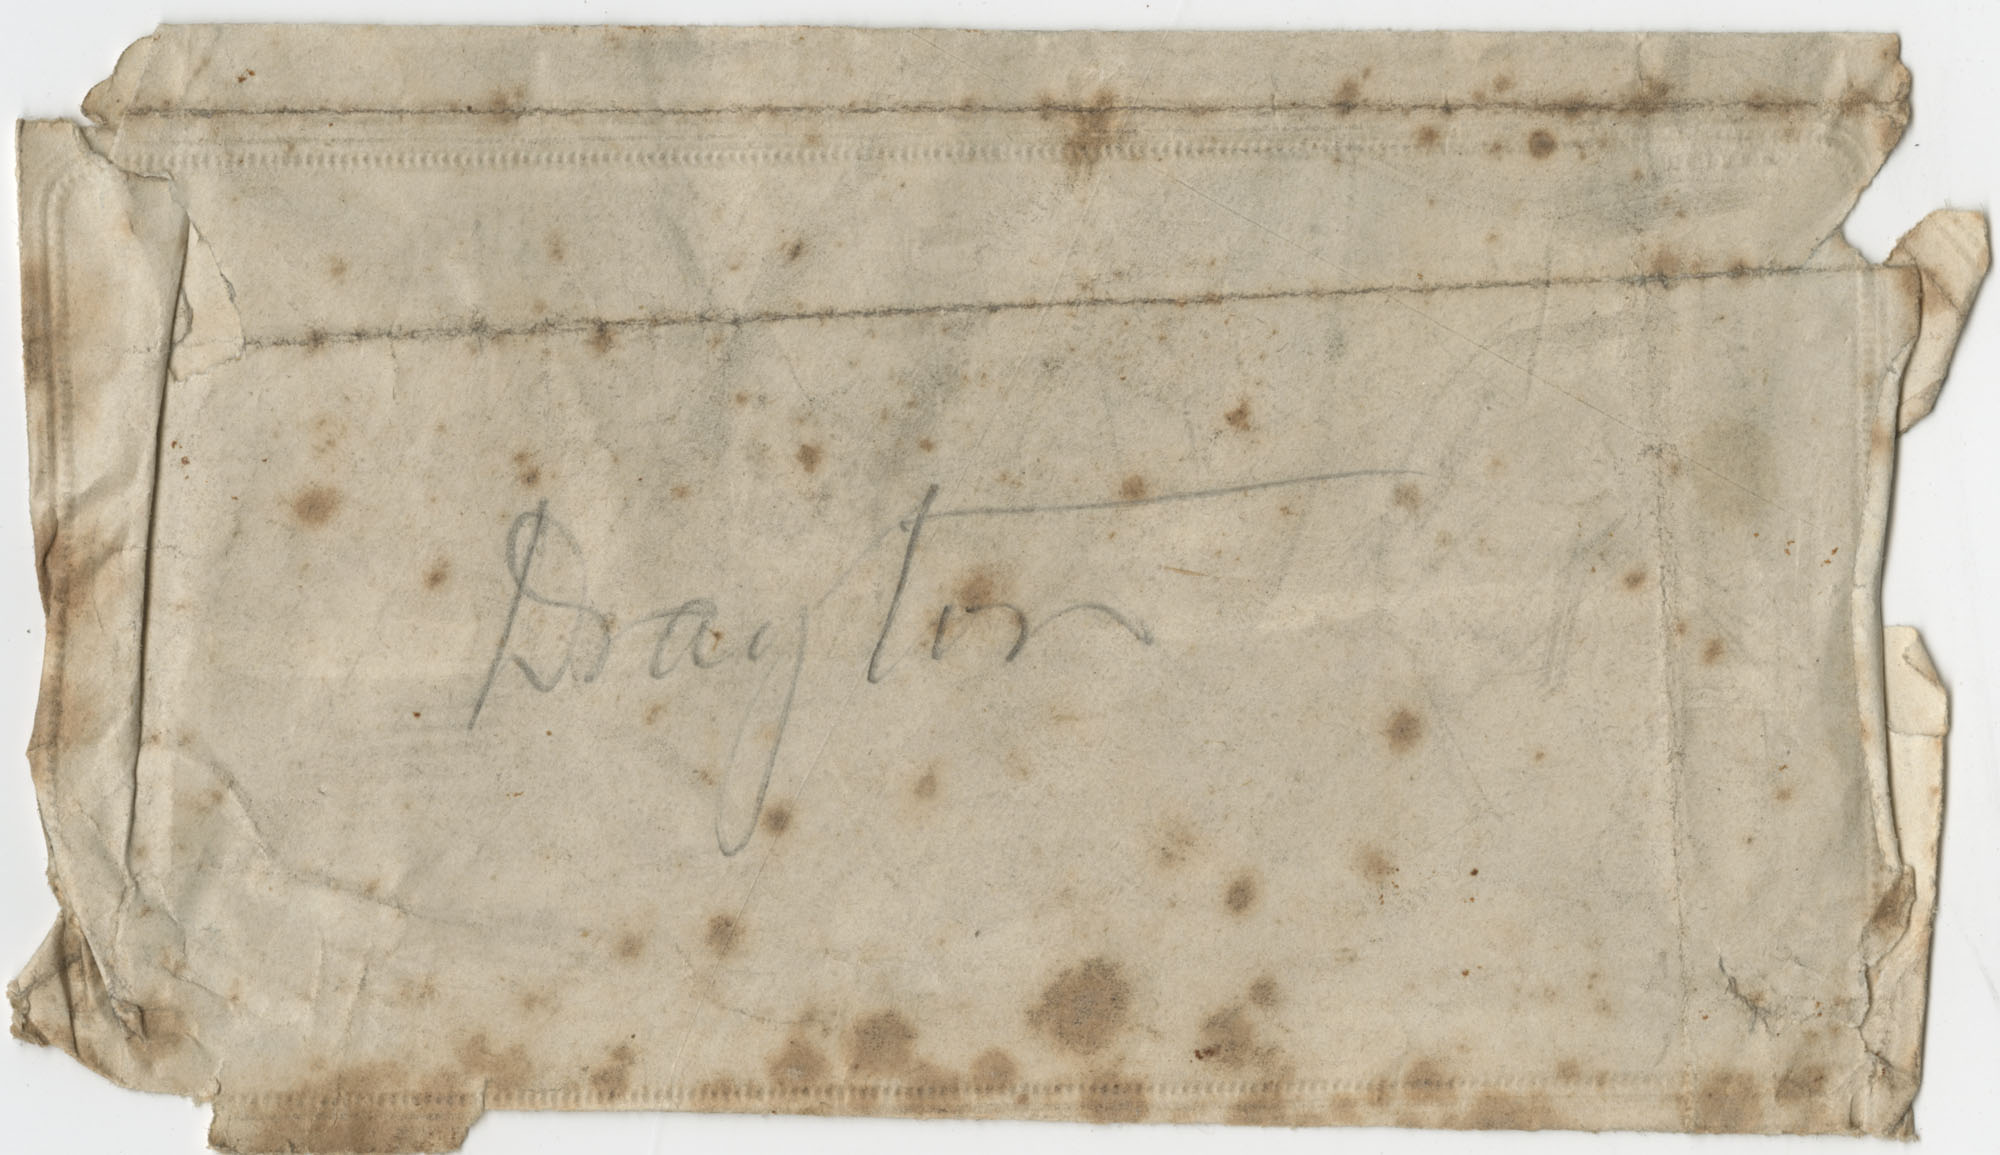 Undated letter by Theodore Drayton Grimke-Drayton to his son, Theodore Grimke Drayton [Jr.?]